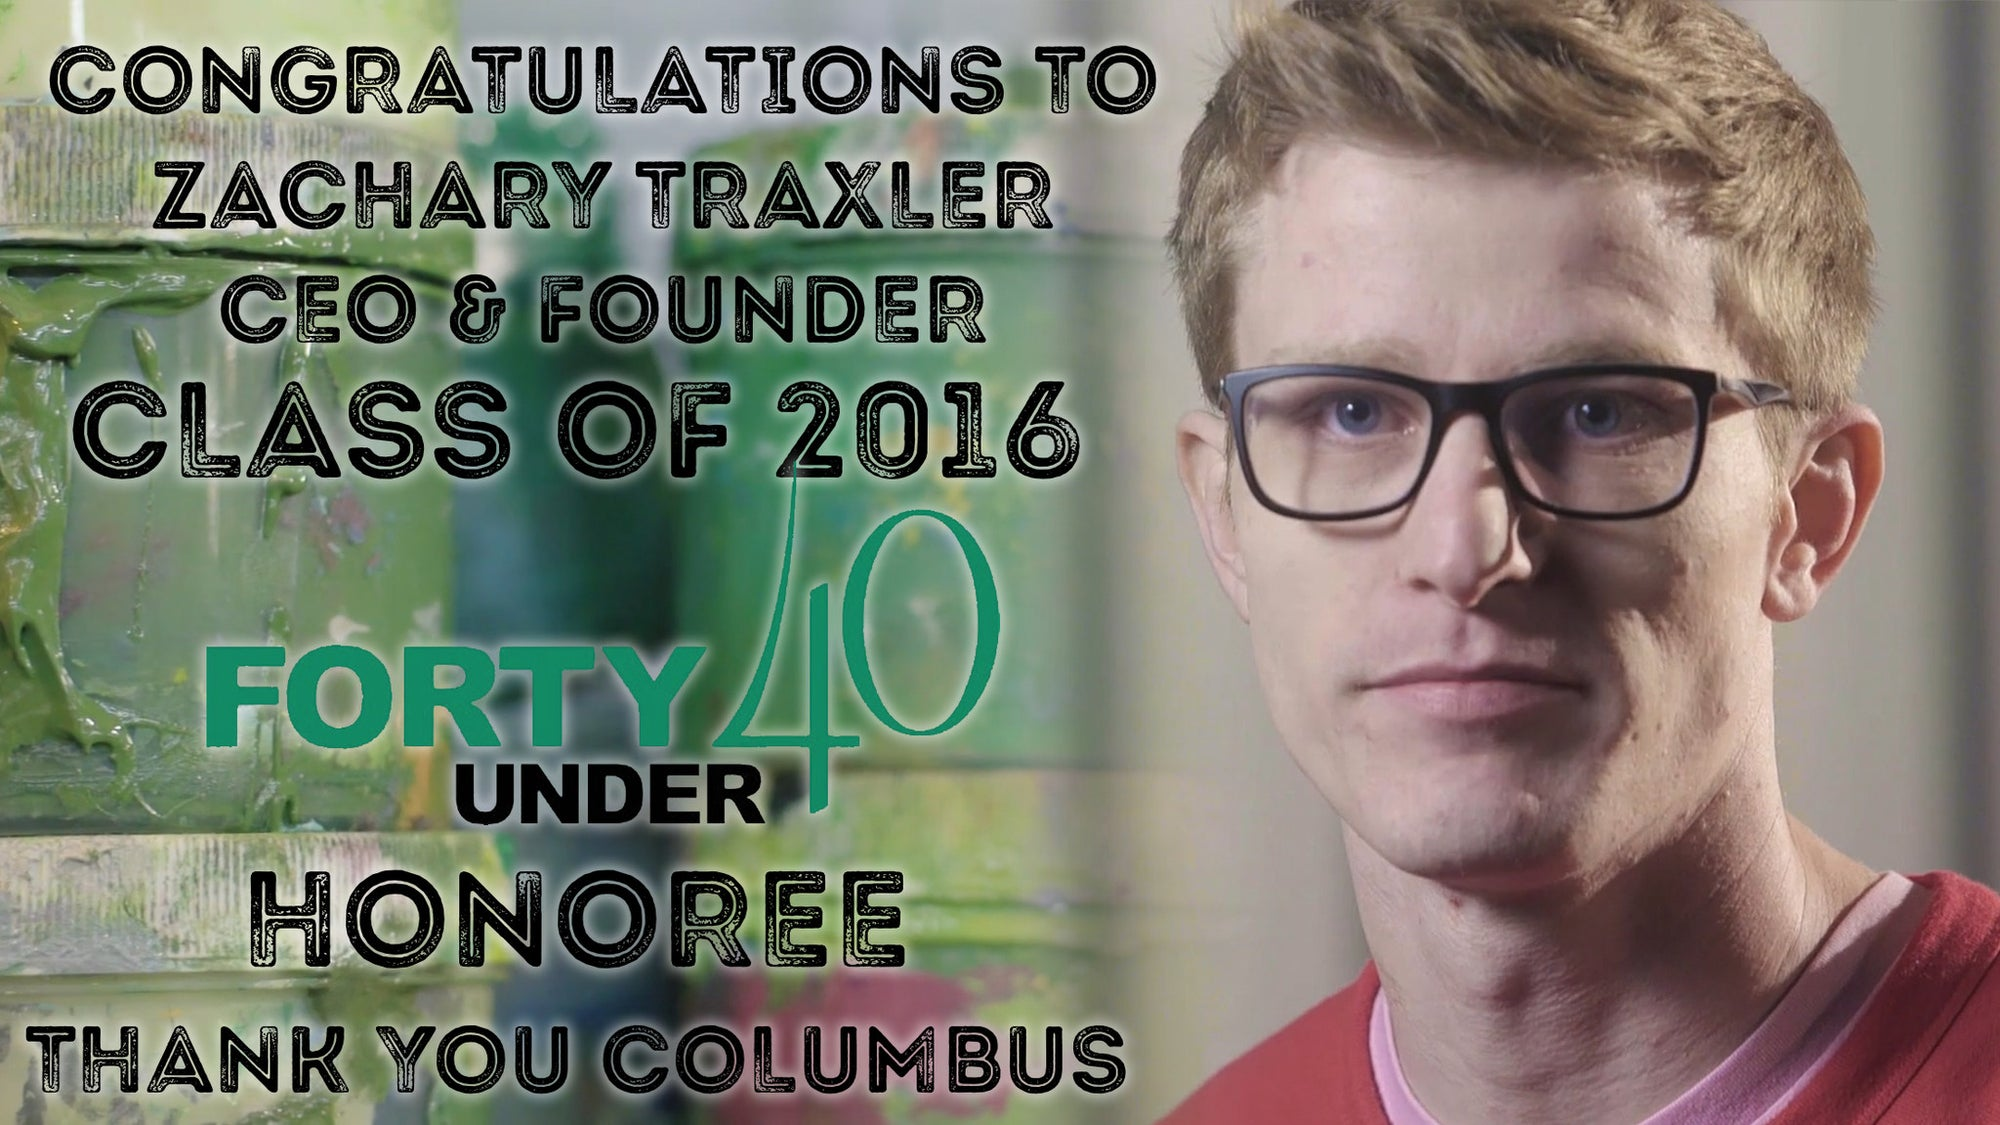 CEO & Founder Zachary Traxler named honoree in 2016 Forty Under 40